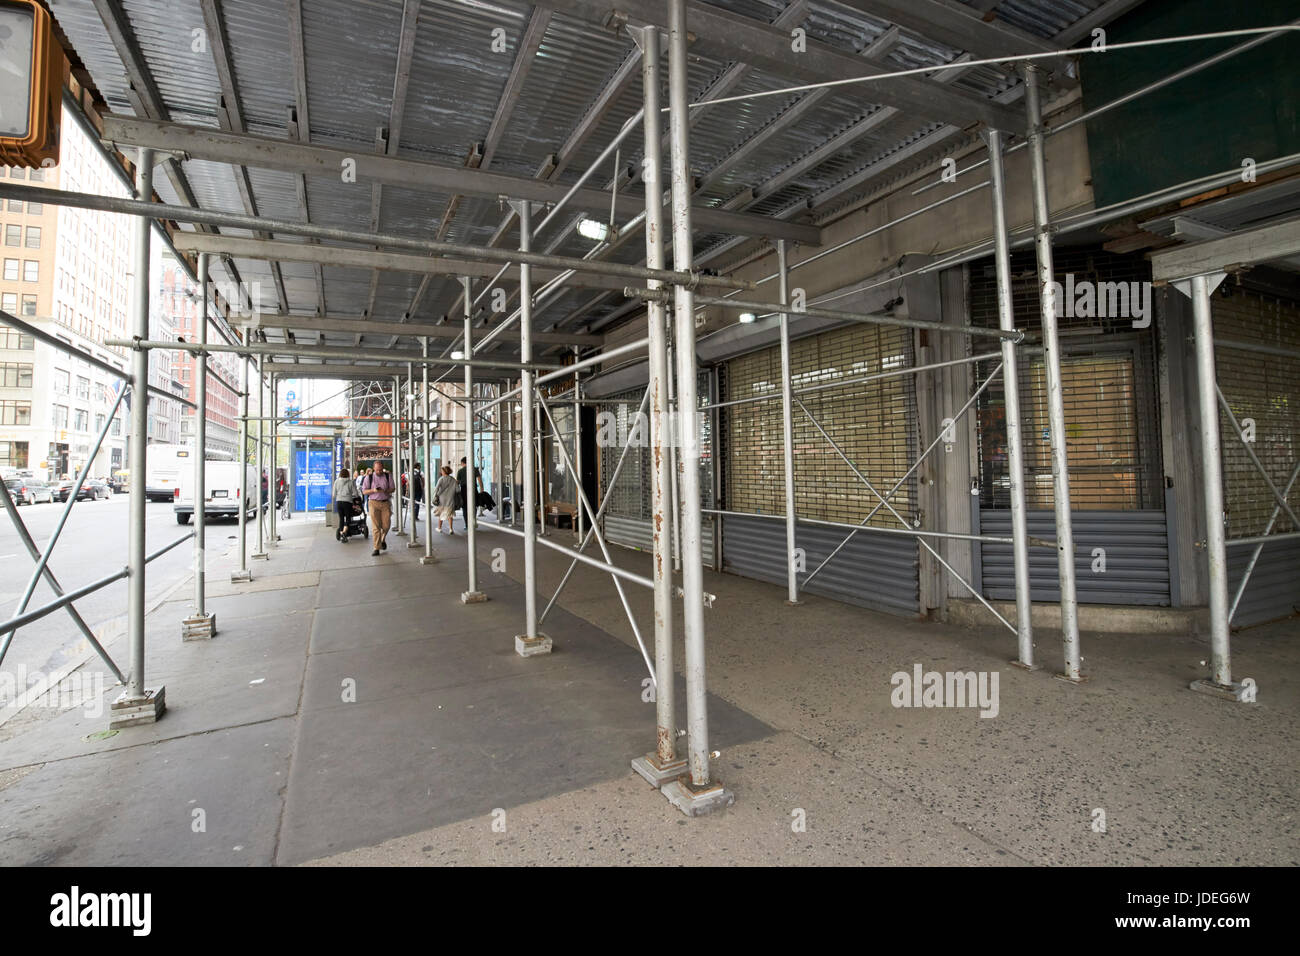 scaffolding over sidewalk next to a building undergoing refurbishment New York City USA - Stock Image